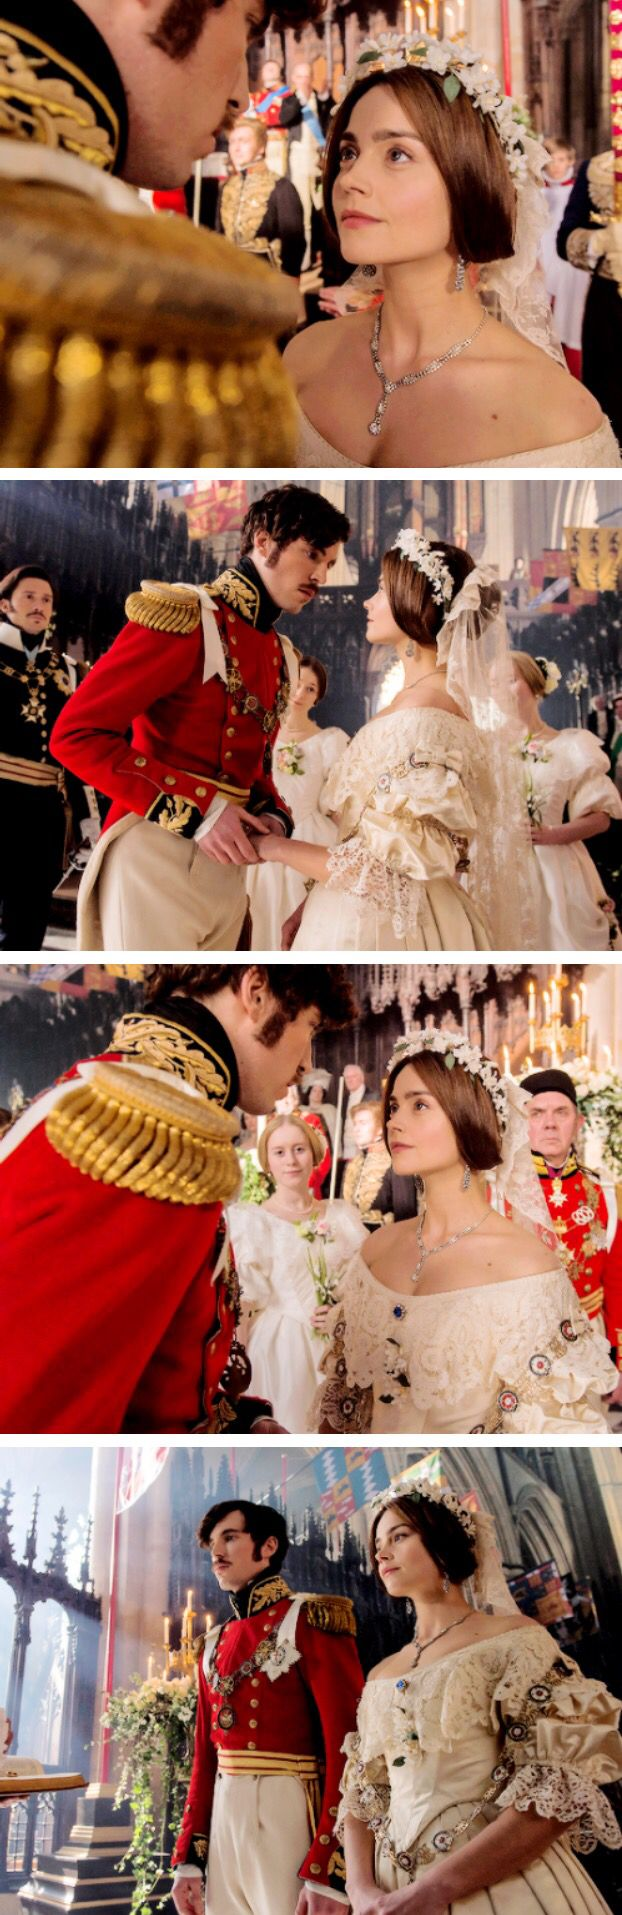 The wedding of Victoria and Albert.